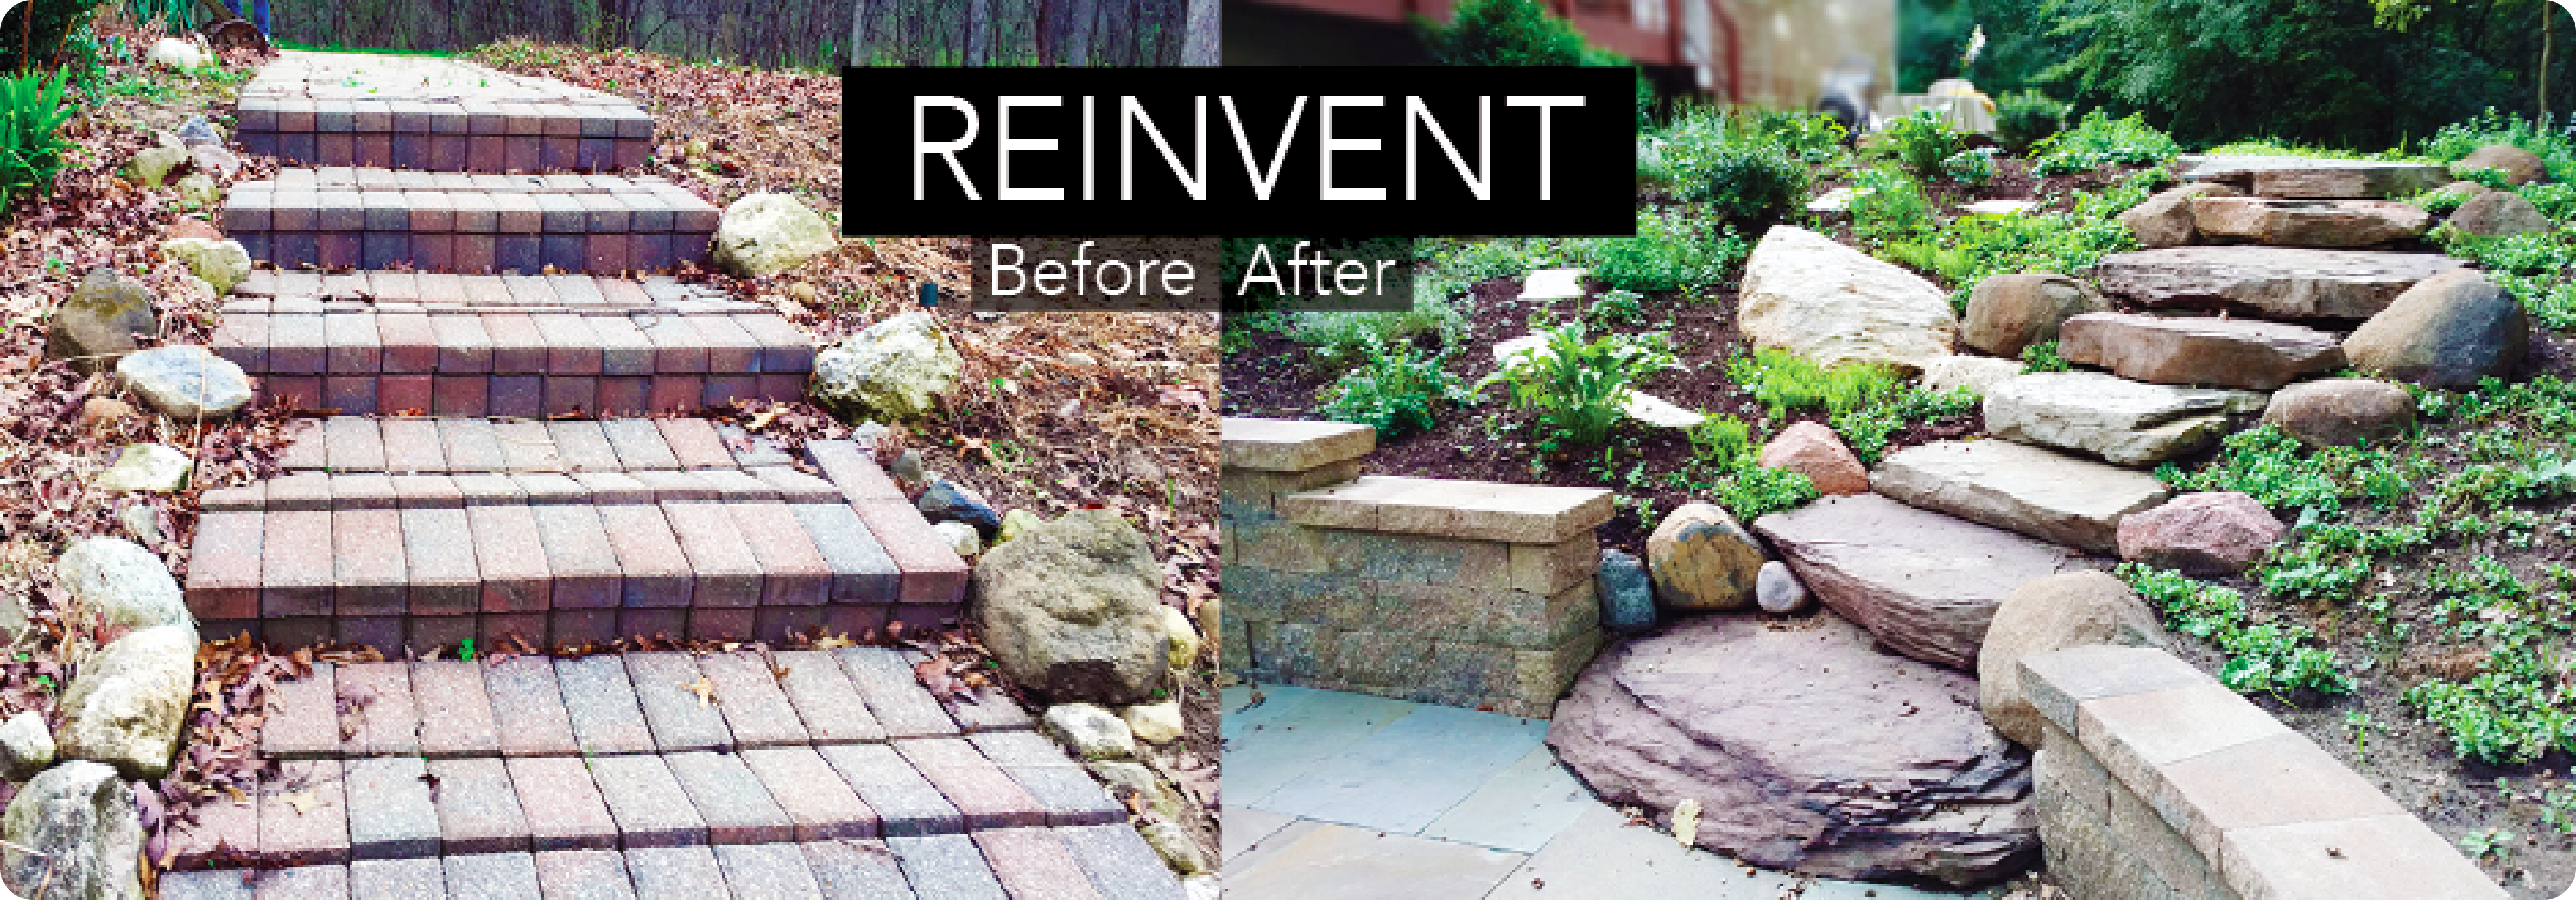 Before After Patio Stone